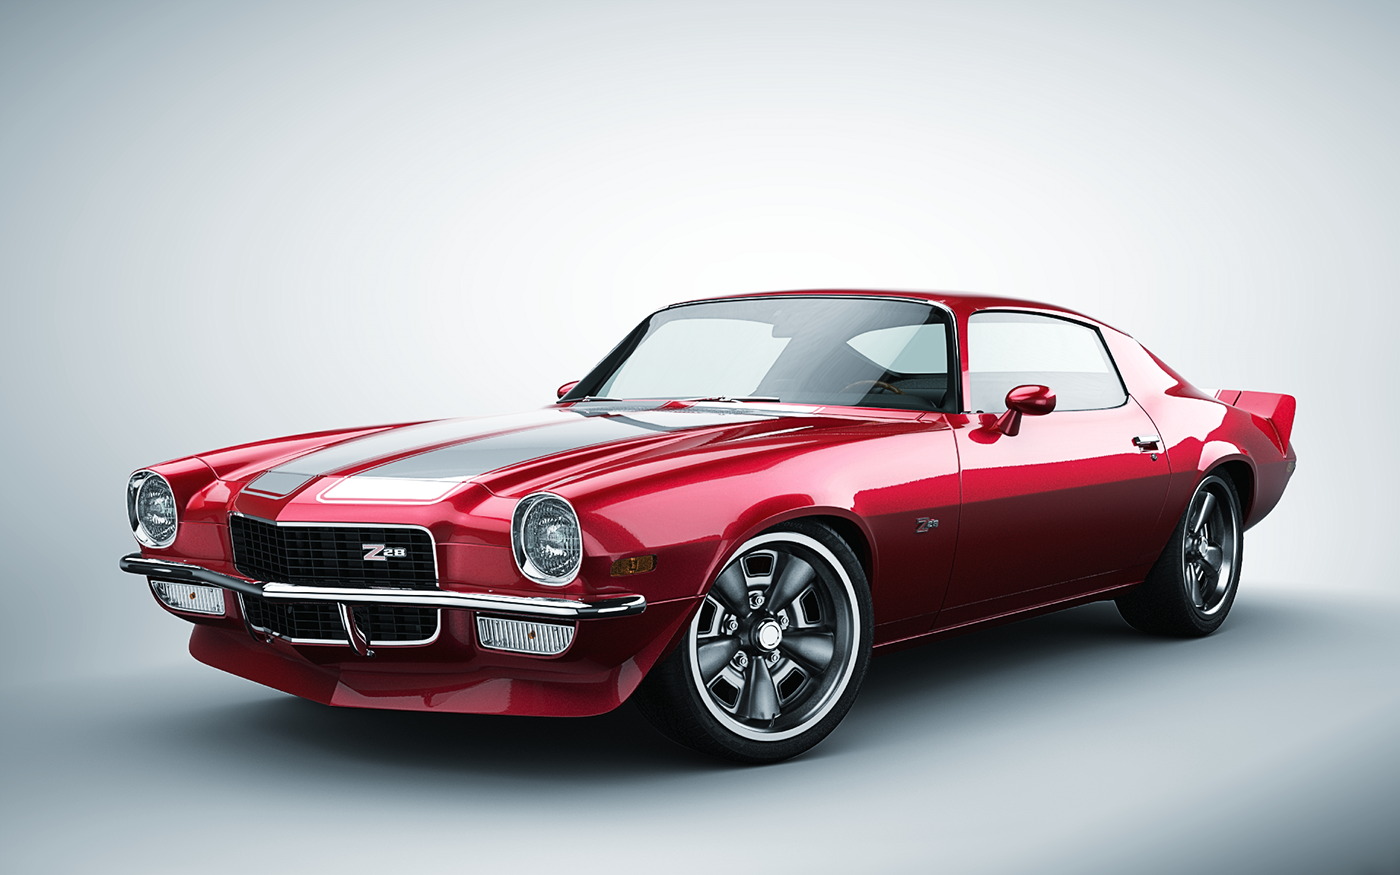 American Muscle Car >> Camaro Z28 - 1970 on Behance